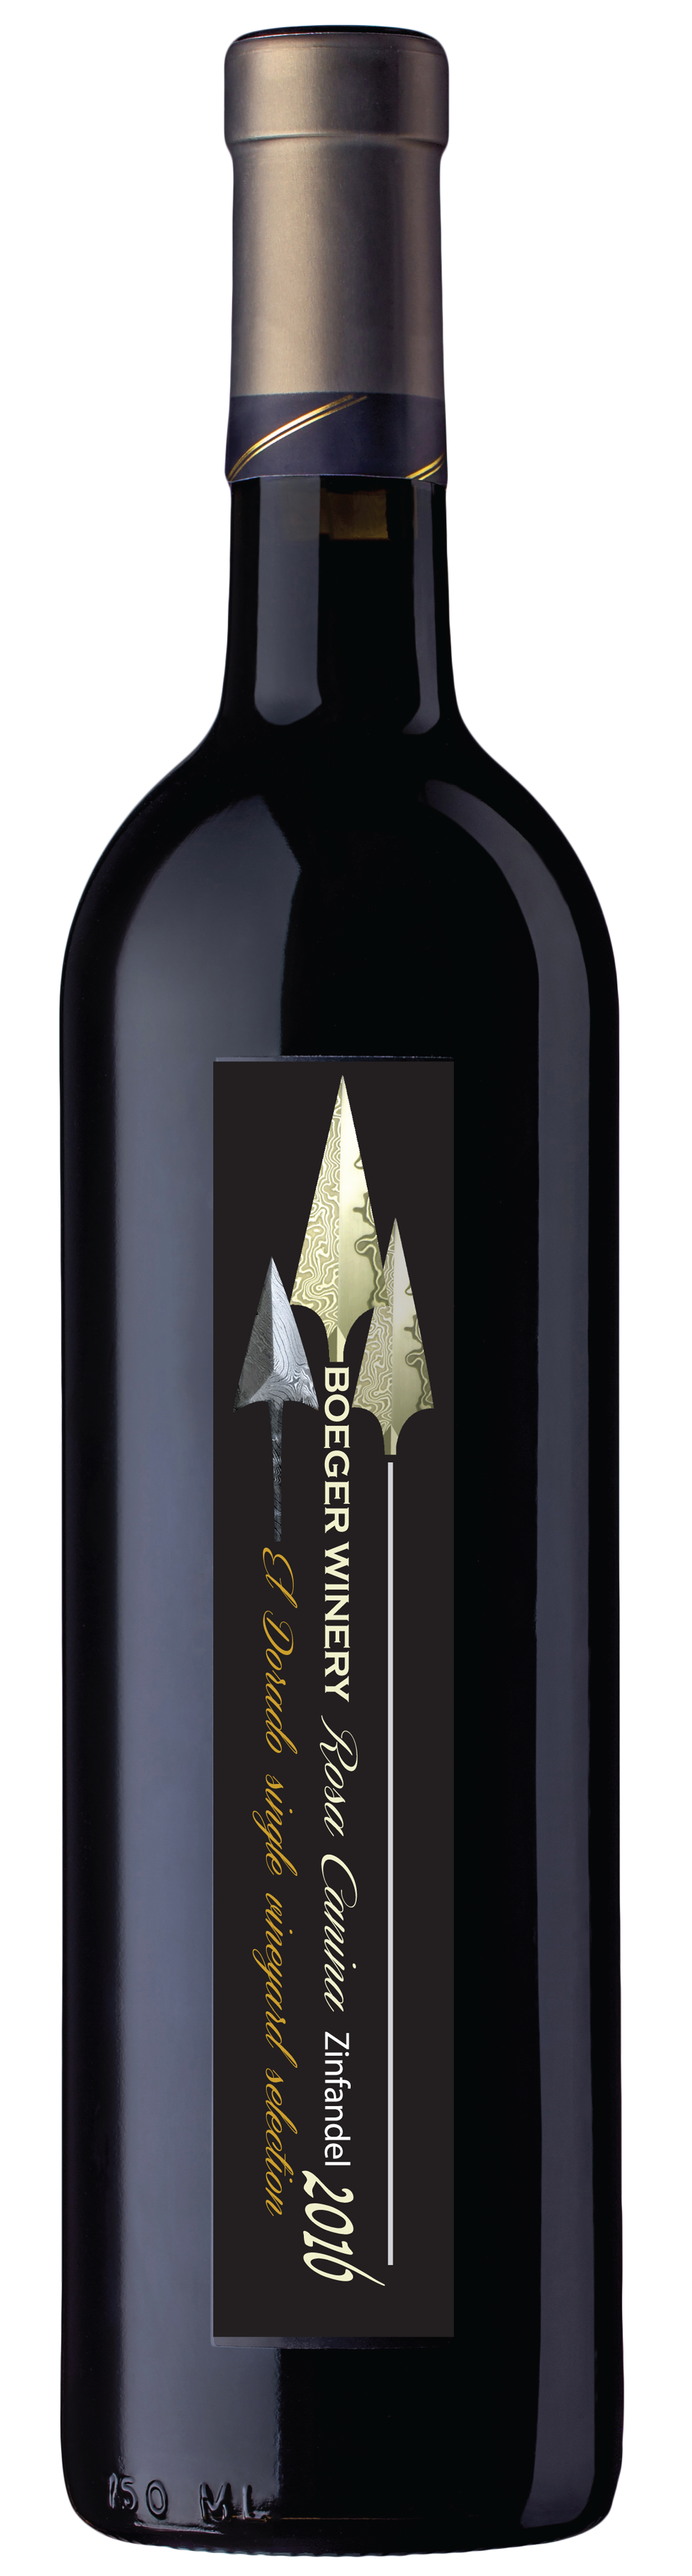 Product Image for 2016 Rosa Canina Zinfandel